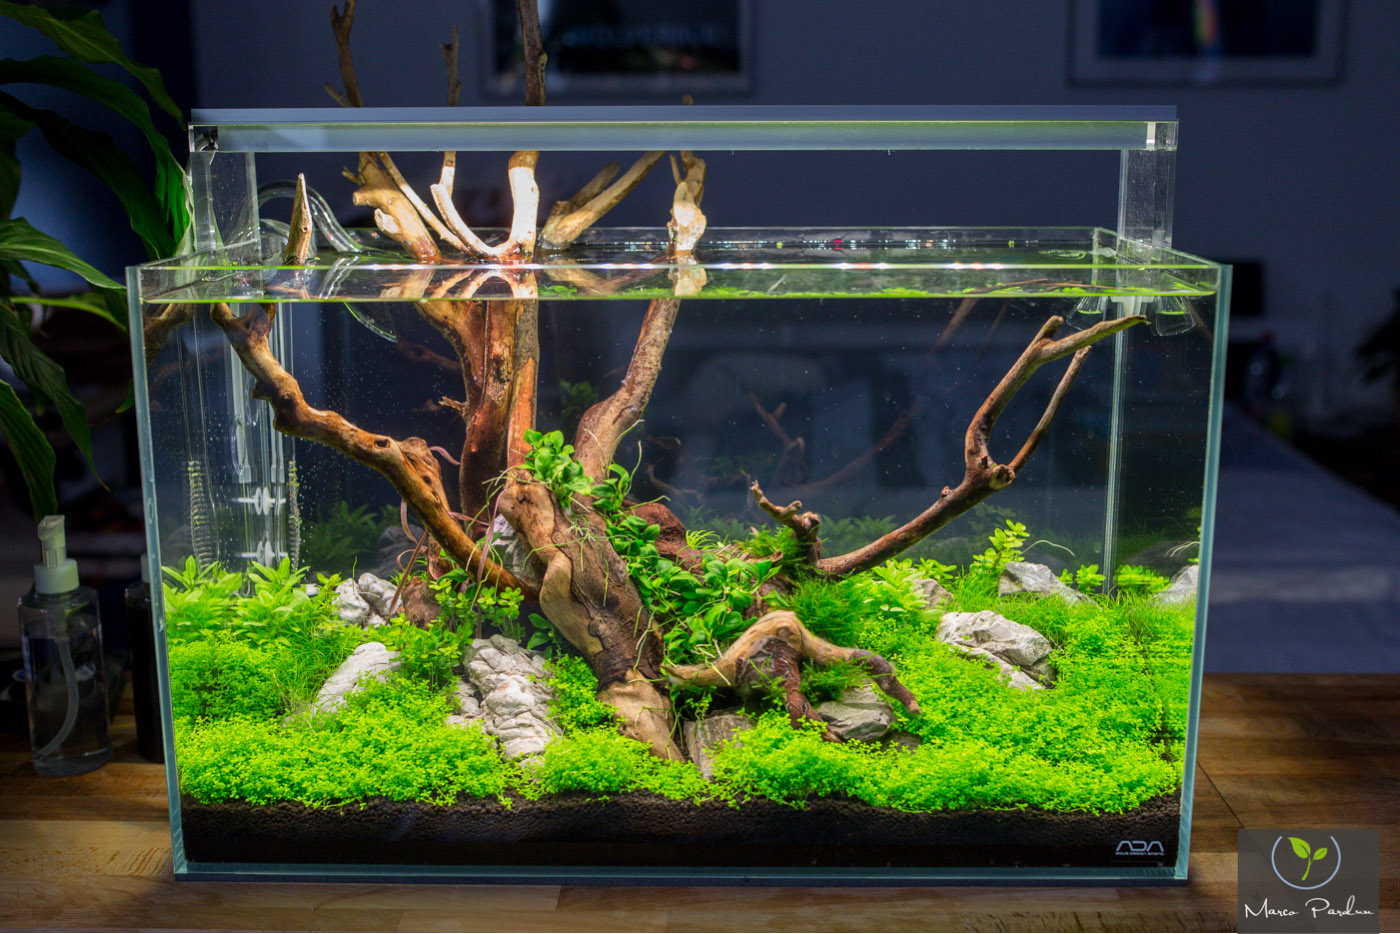 https://www.aquascaping-forum.de/index.php?page=Attachment&attachmentID=2672